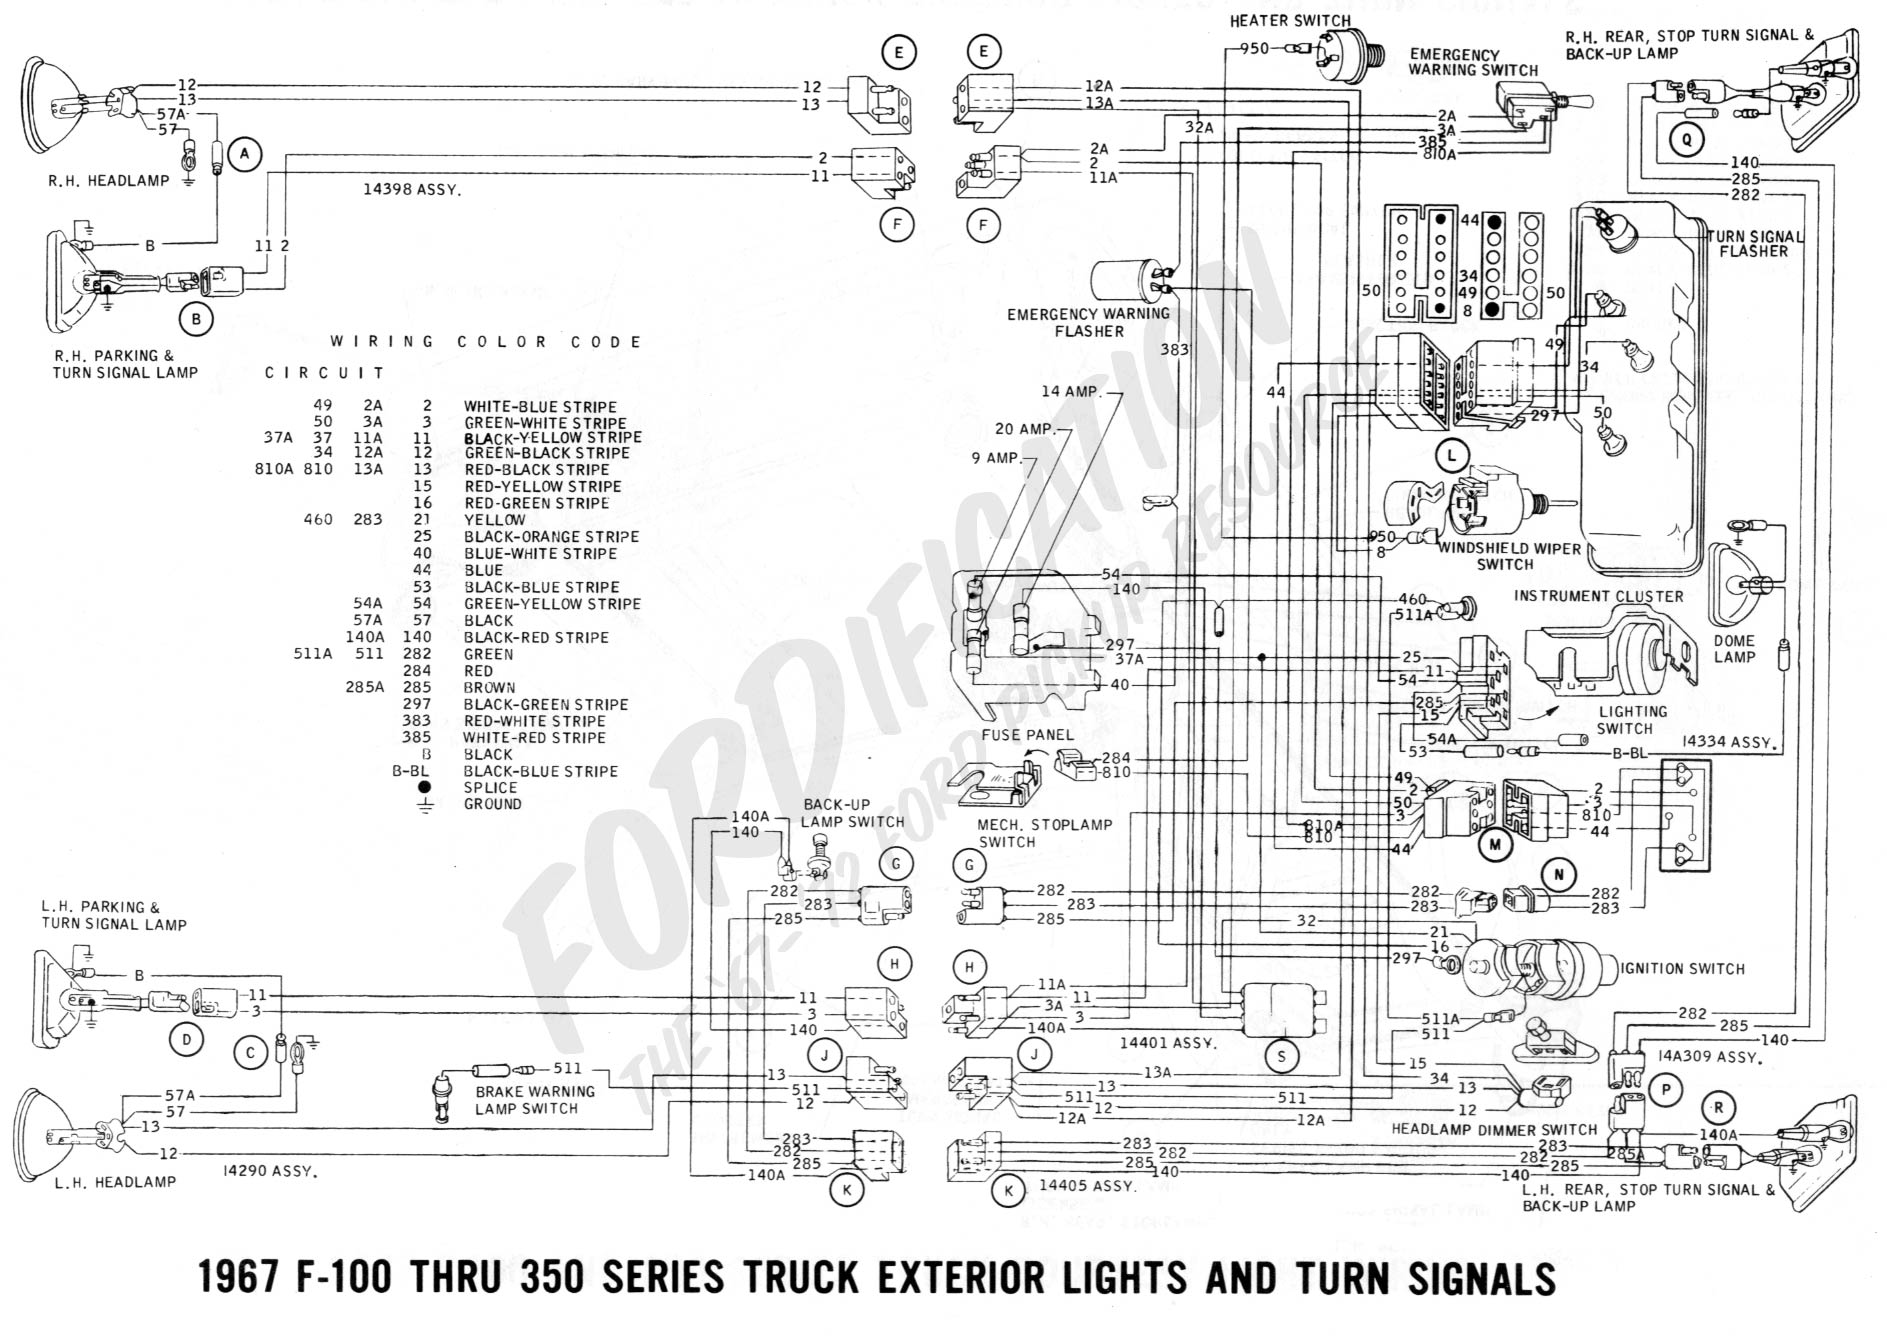 89 F150 Tachometer Wiring Reinvent Your Diagram Chevy Tach 1989 Ford Ranger Tail Light Detailed Schematics Rh Highcliffemedicalcentre Com 350